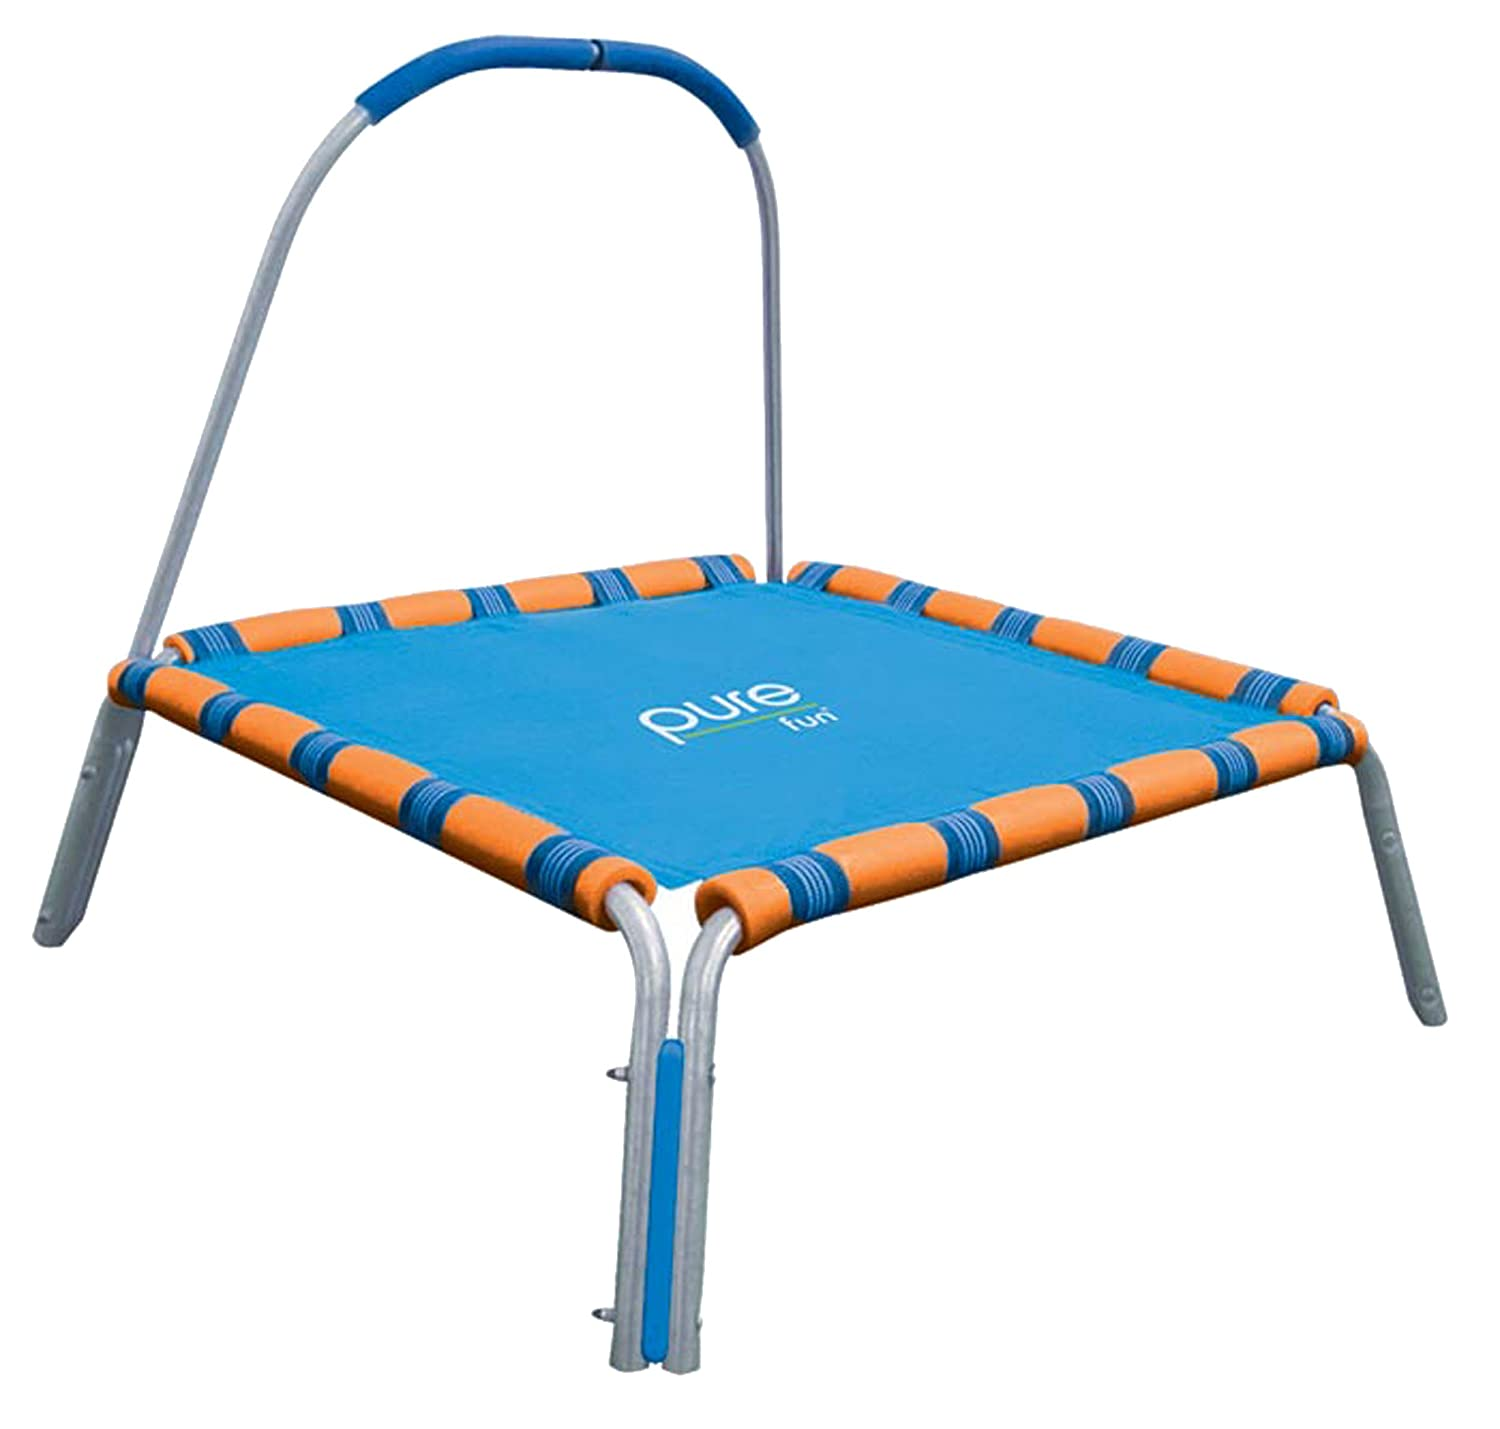 Kids Trampoline With Handle Fel7 Com